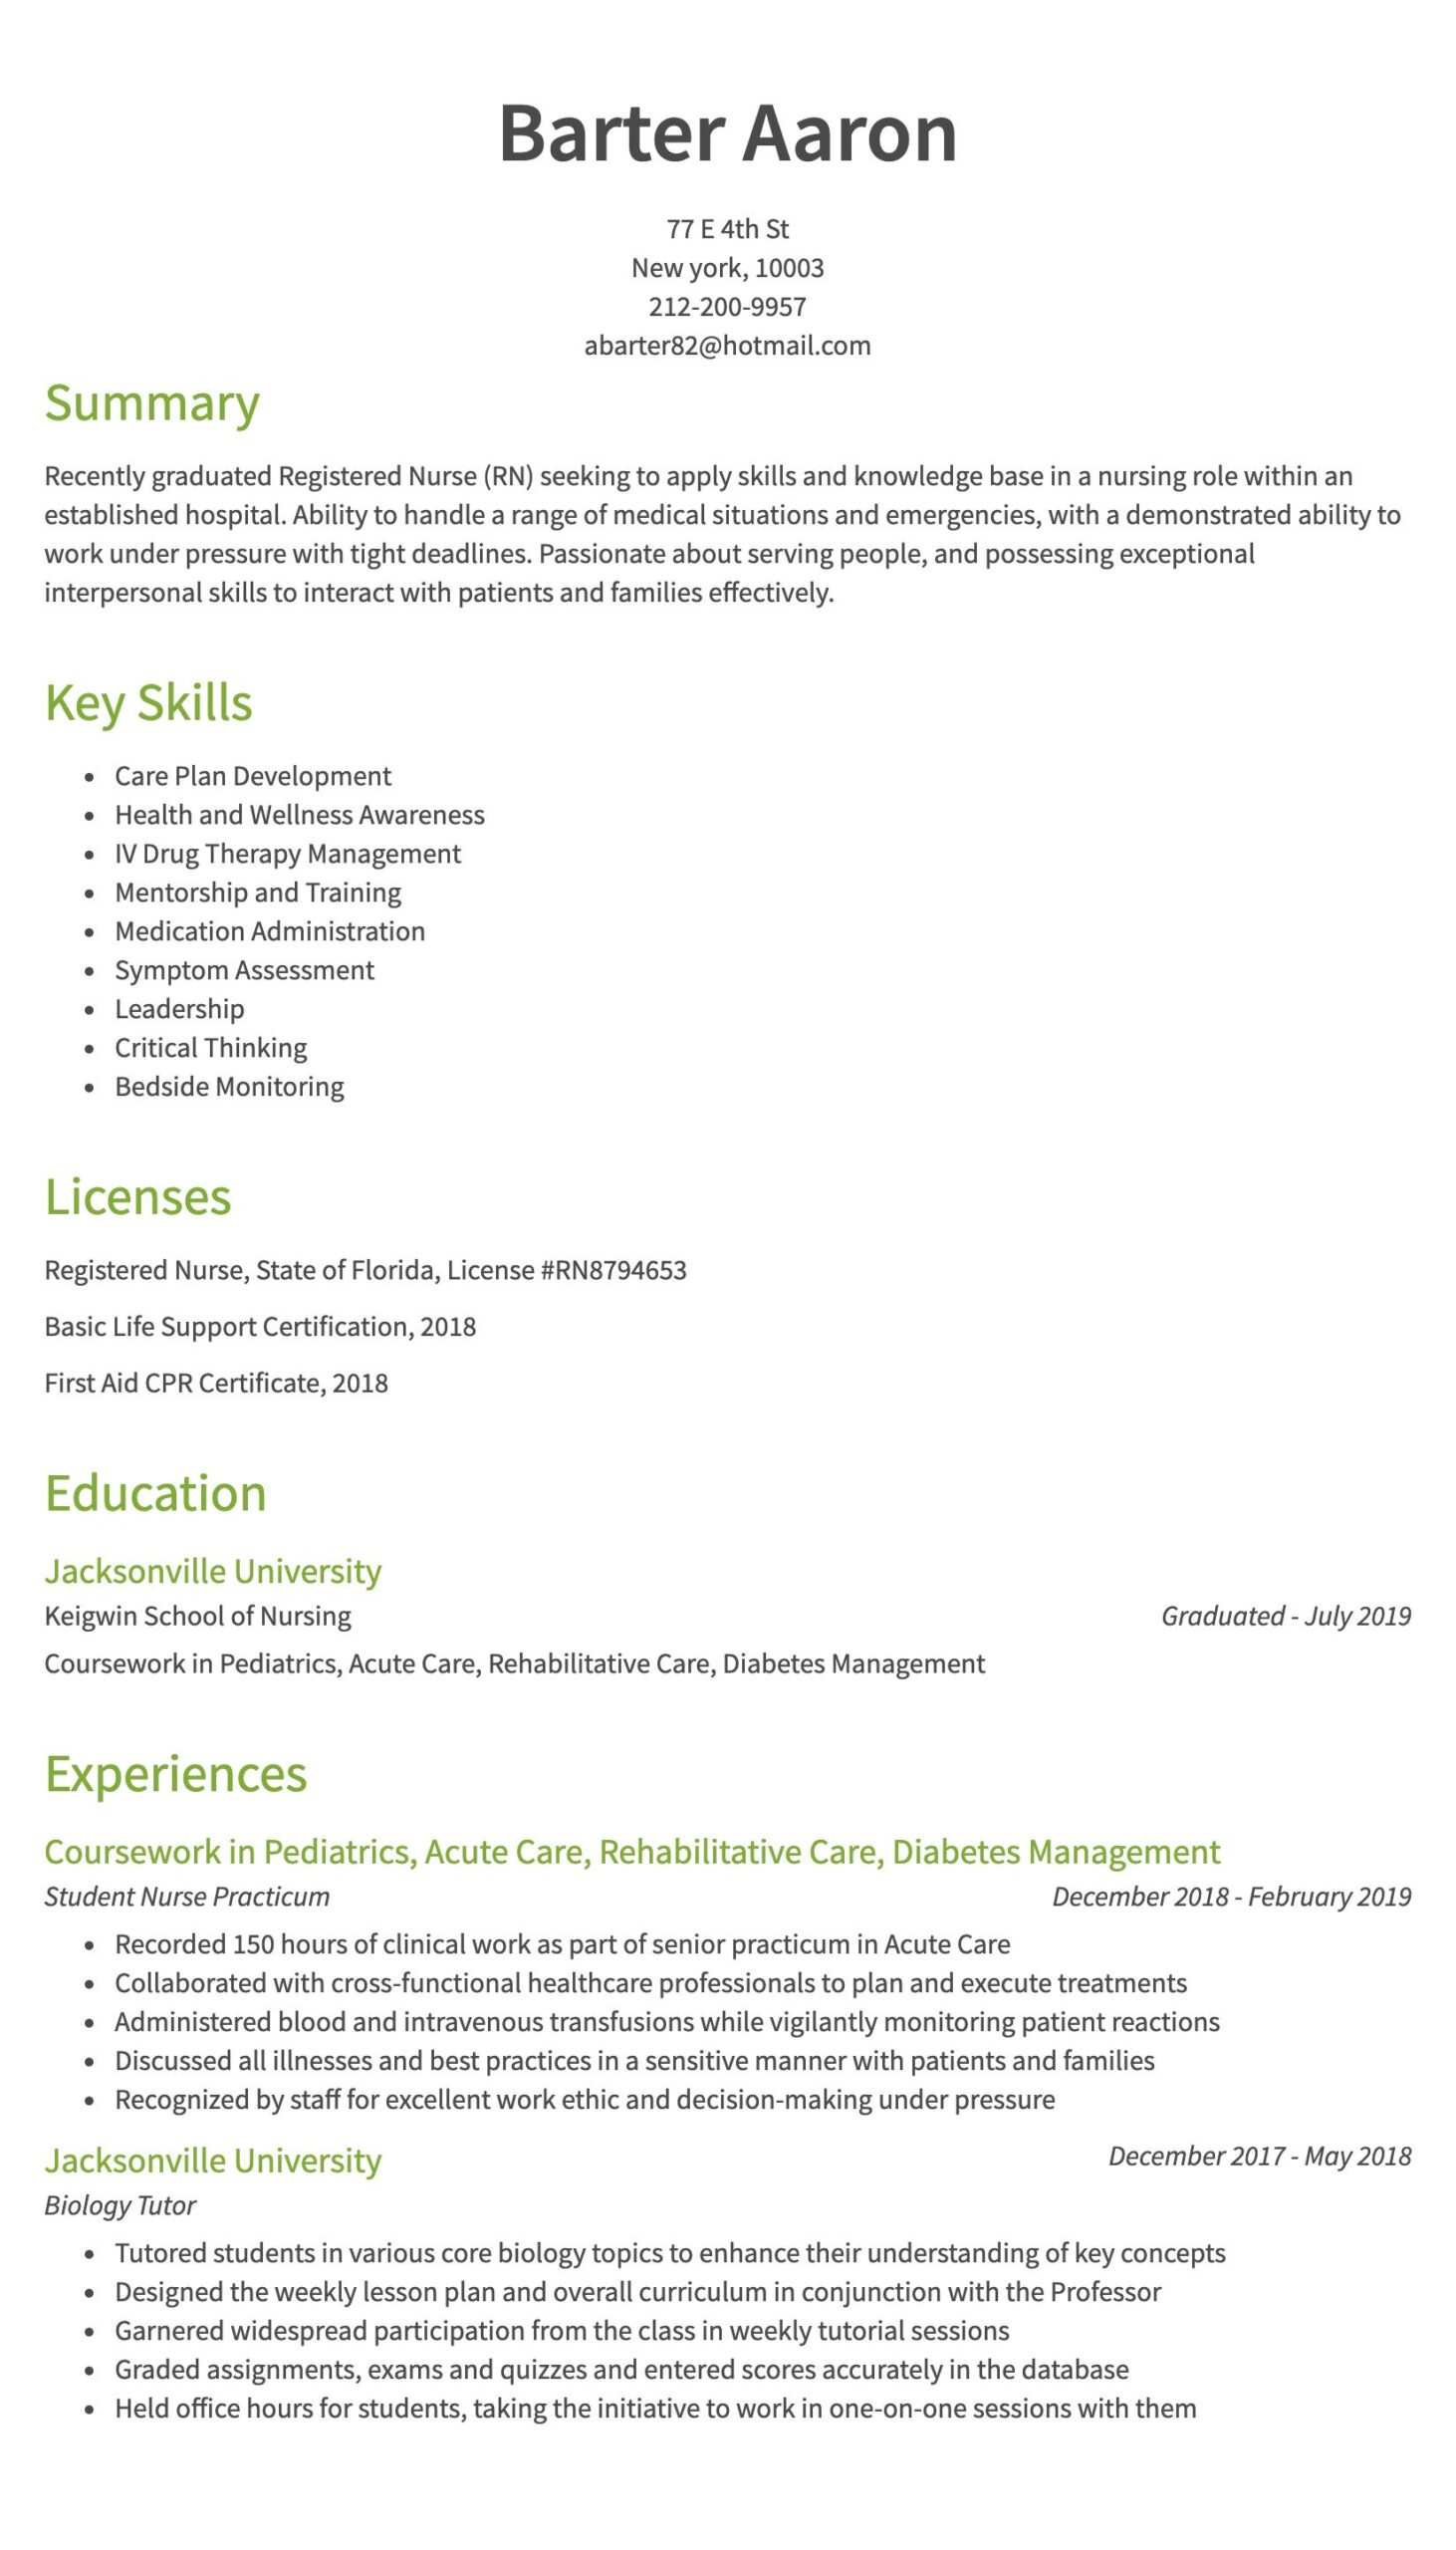 nursing resume examples samples written by rn managers initiative skills years of exp Resume Initiative Skills Resume Examples